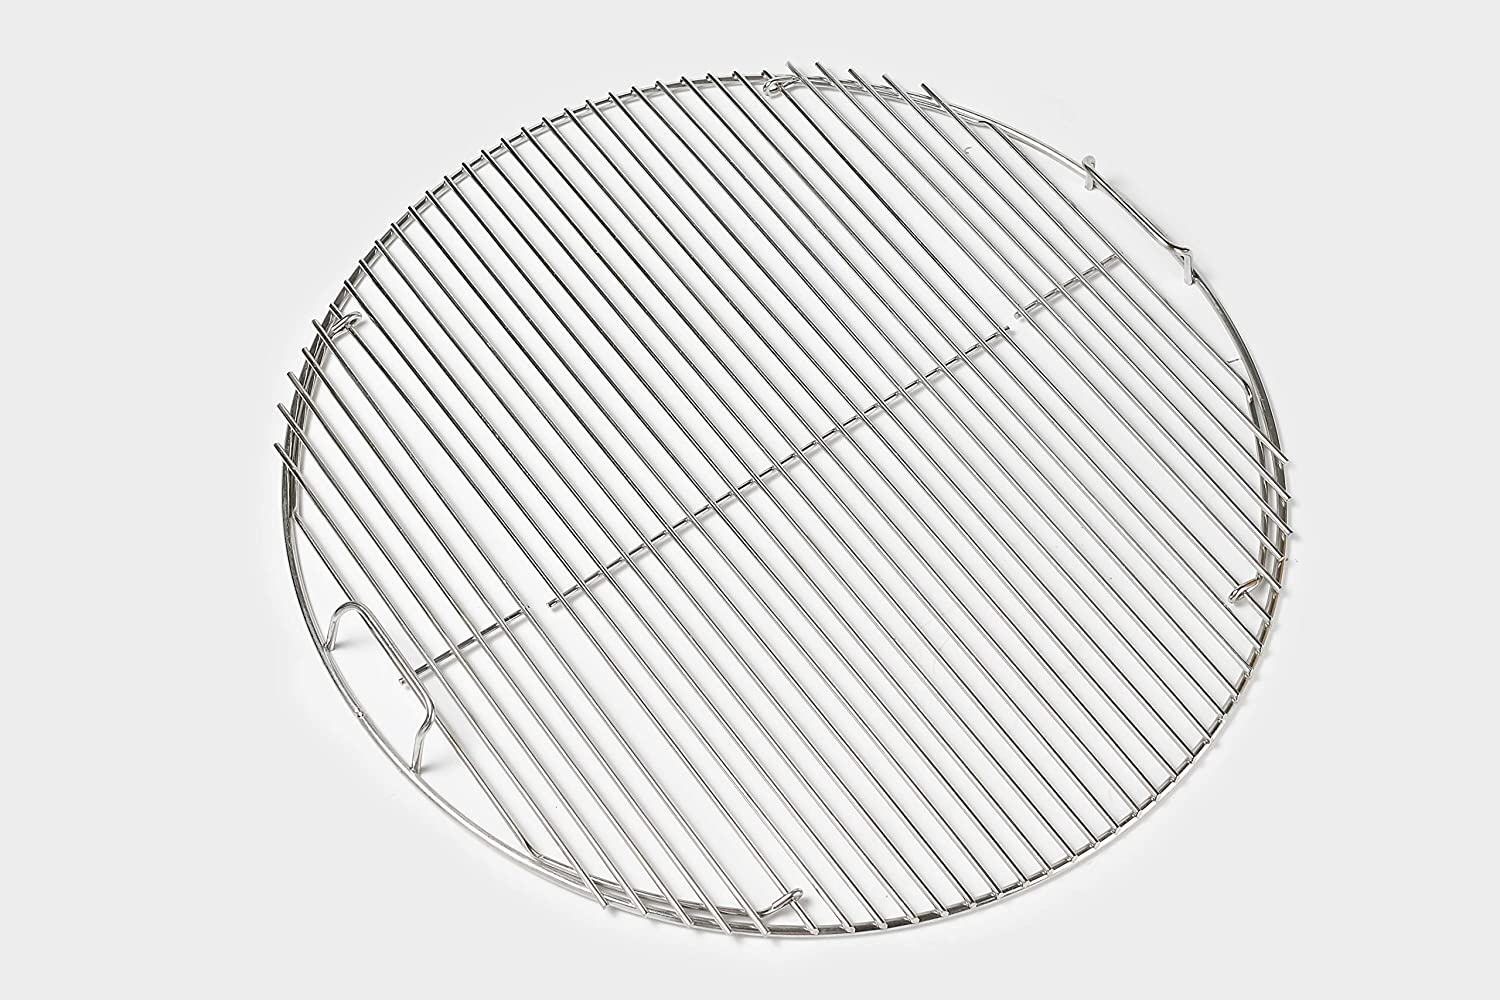 Hot sale outdoor camping Charcoal burning cooking grates net stainless steel cheap barbecue grill wire mesh bbq grills